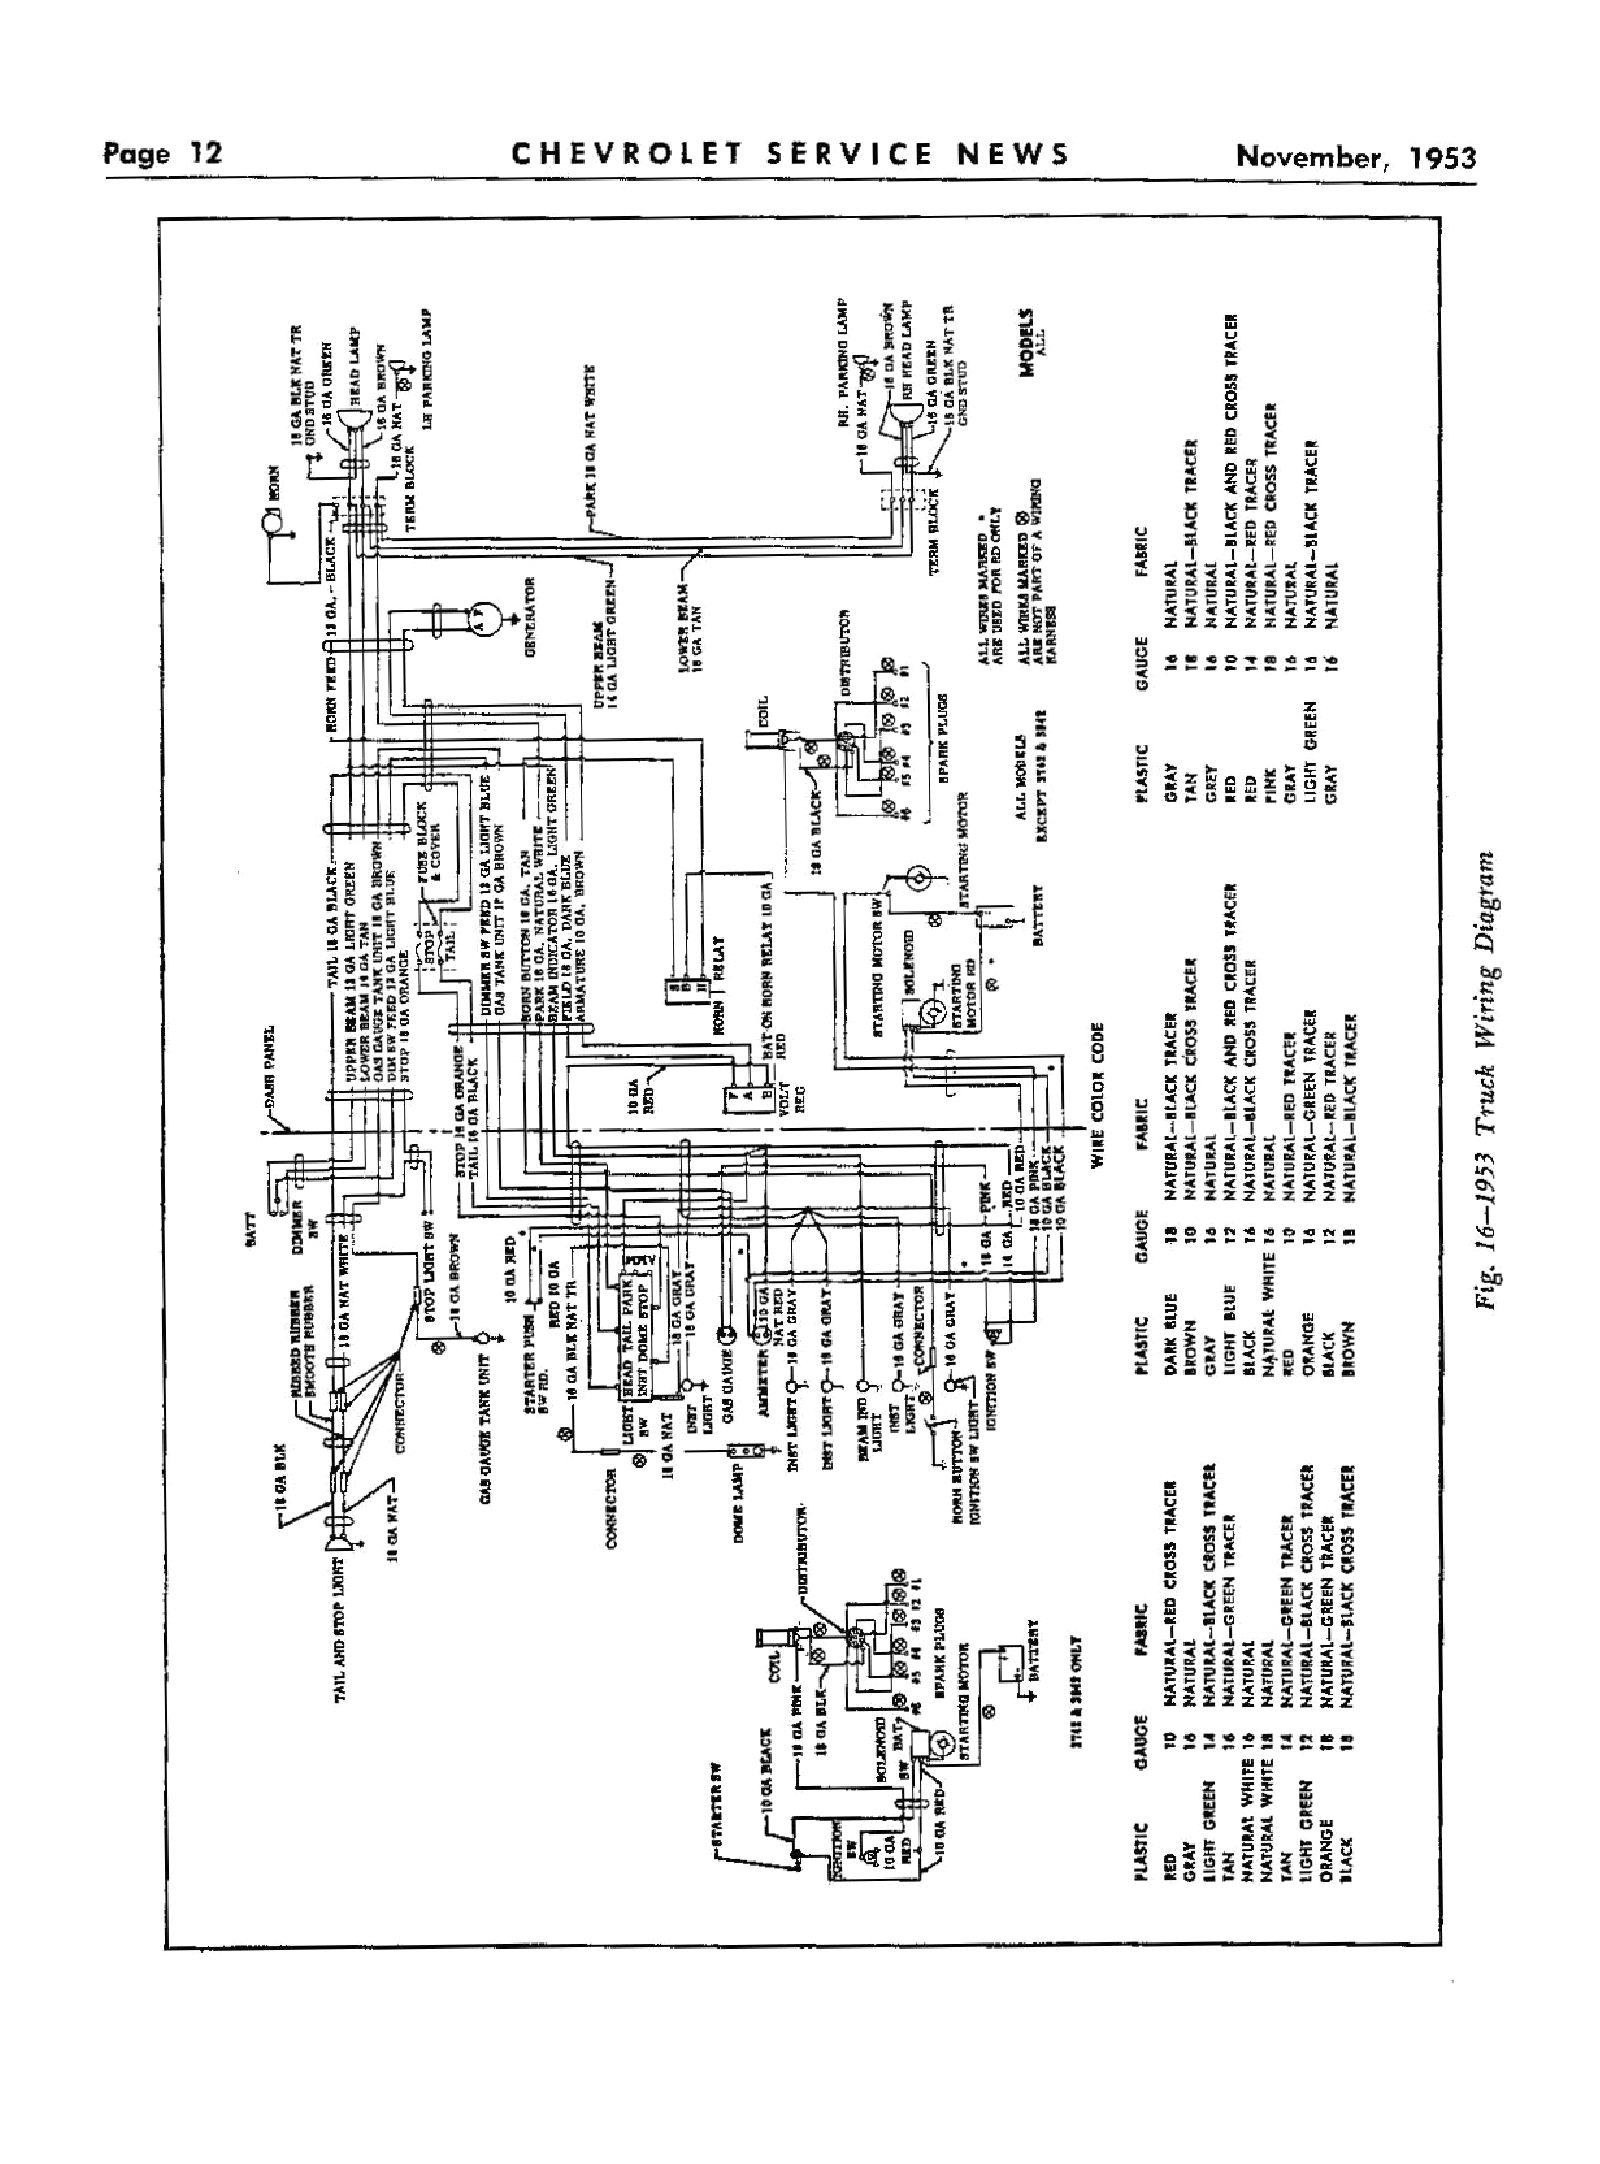 Wiring Diagram For 1952 Ford F1 Truck : 37 Wiring Diagram